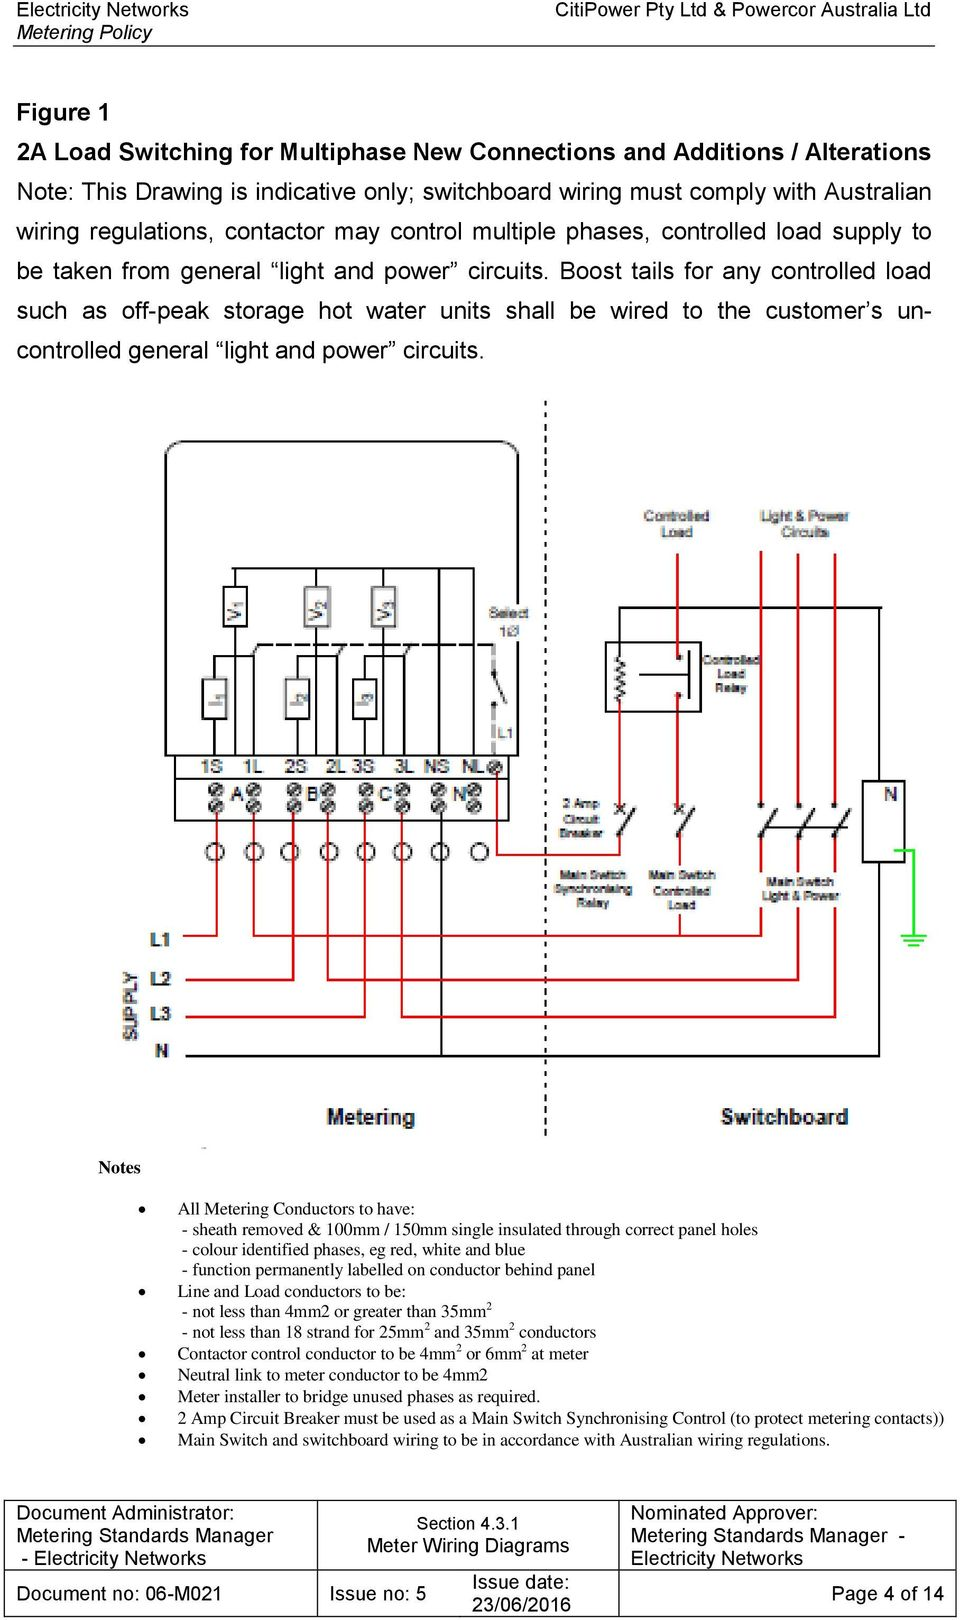 431 Bau Meter Wiring Diagrams Pdf Dedicated Circuits For Electrical In Home Http Boost Tails Any Controlled Load Such As Off Peak Storage Hot Water Units Shall